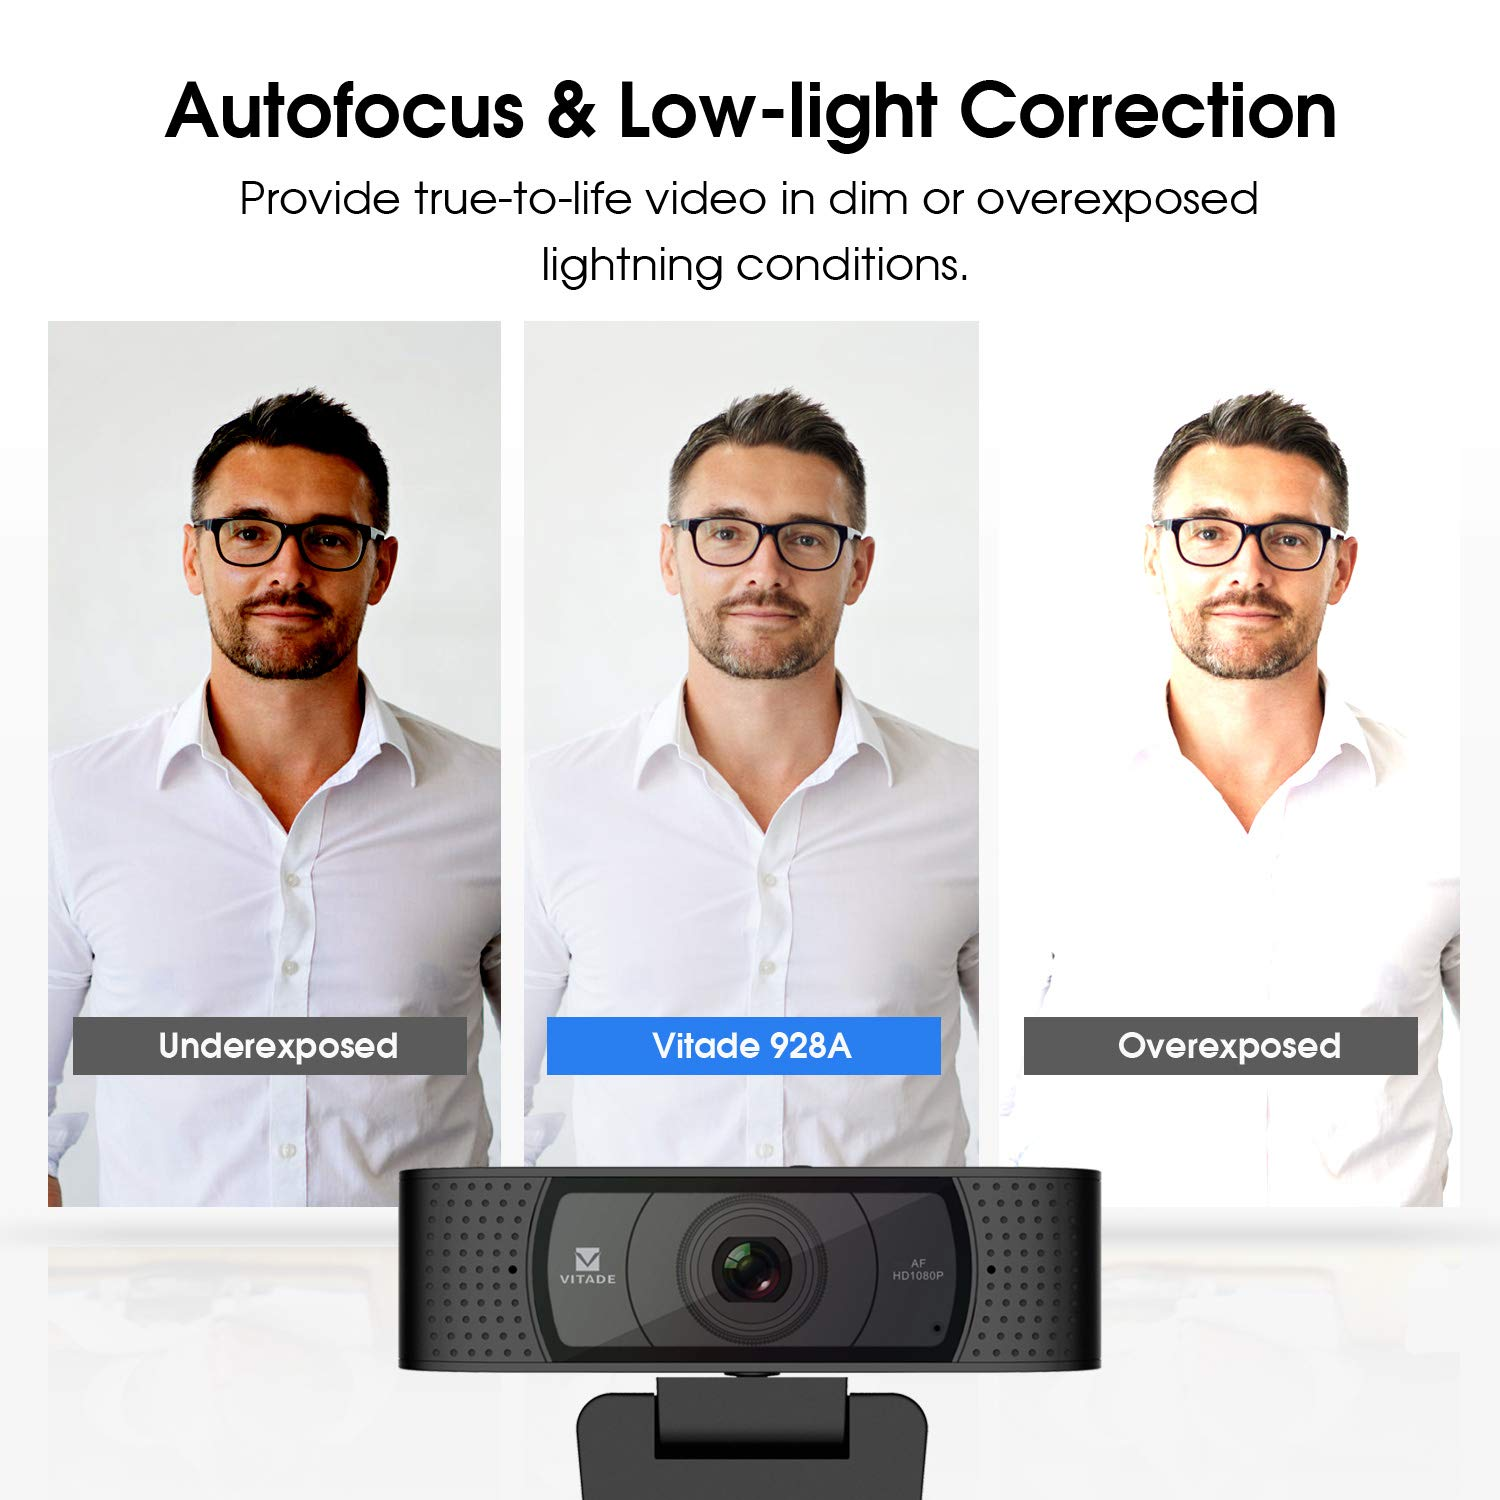 Vitade 928A Pro USB Computer Web Camera Video Cam for Streaming Gaming Conferencing Mac Windows PC Laptop Desktop Xbox Skype OBS Twitch YouTube Xsplit HD Webcam 1080P with Microphone /& Cover Slide